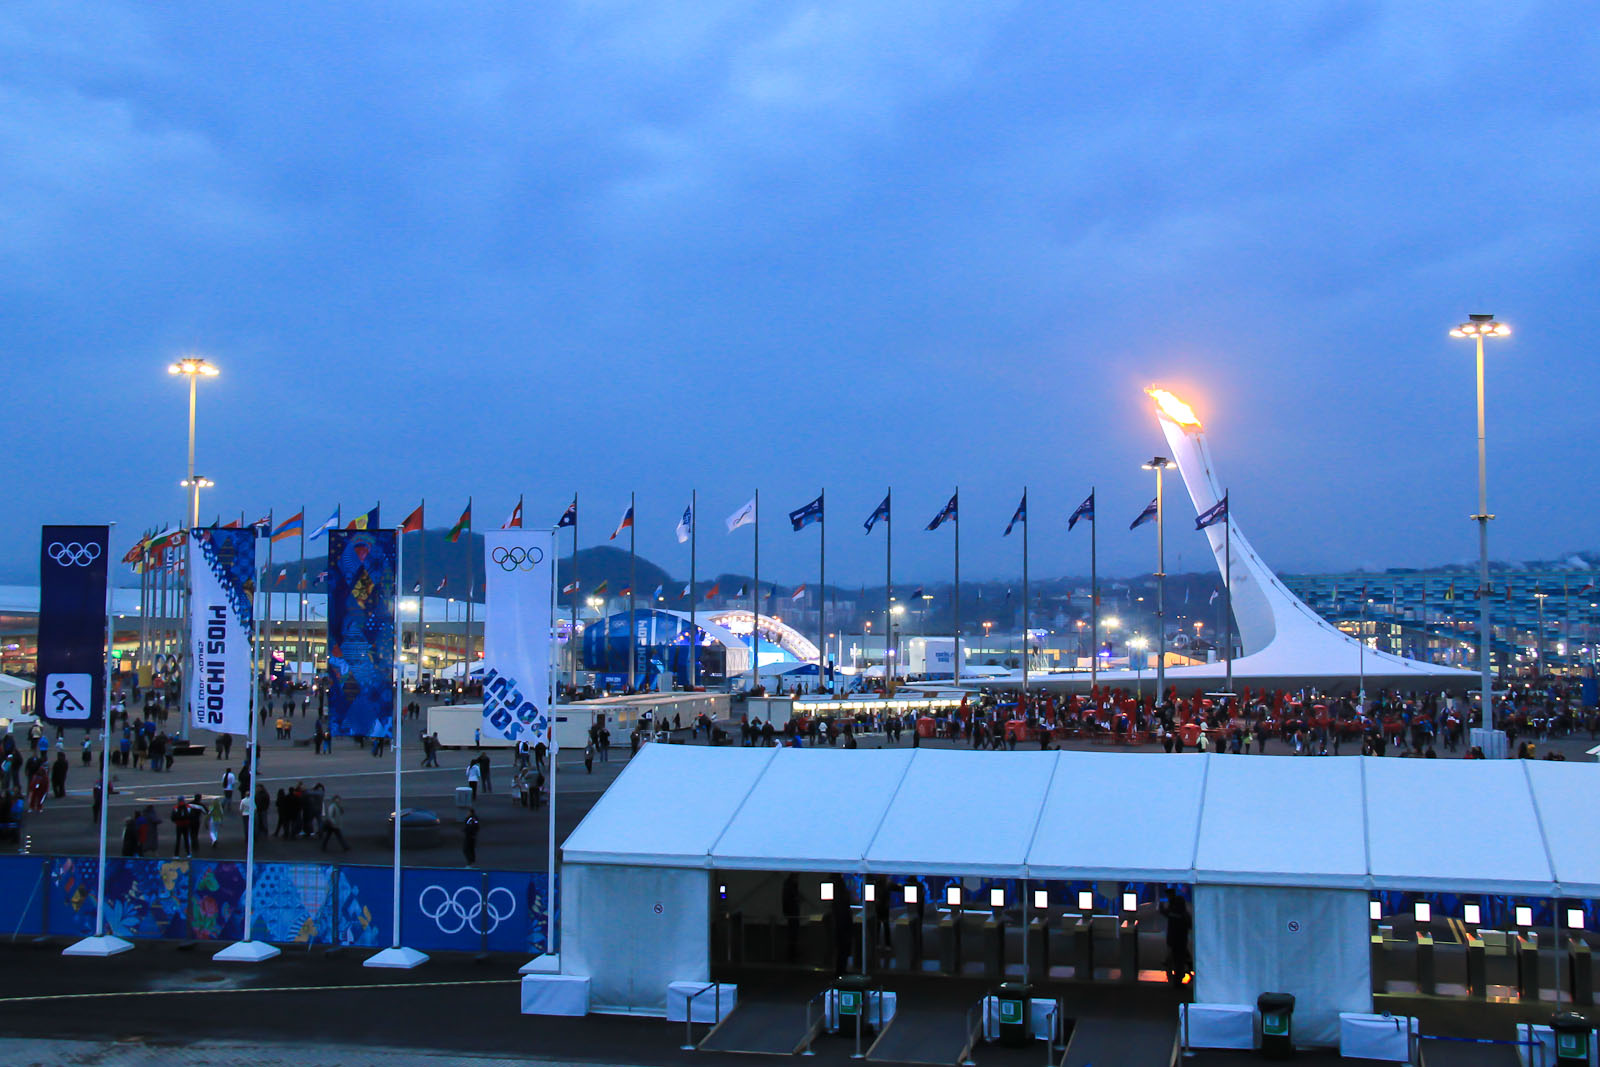 Olympic games Sochi-2014